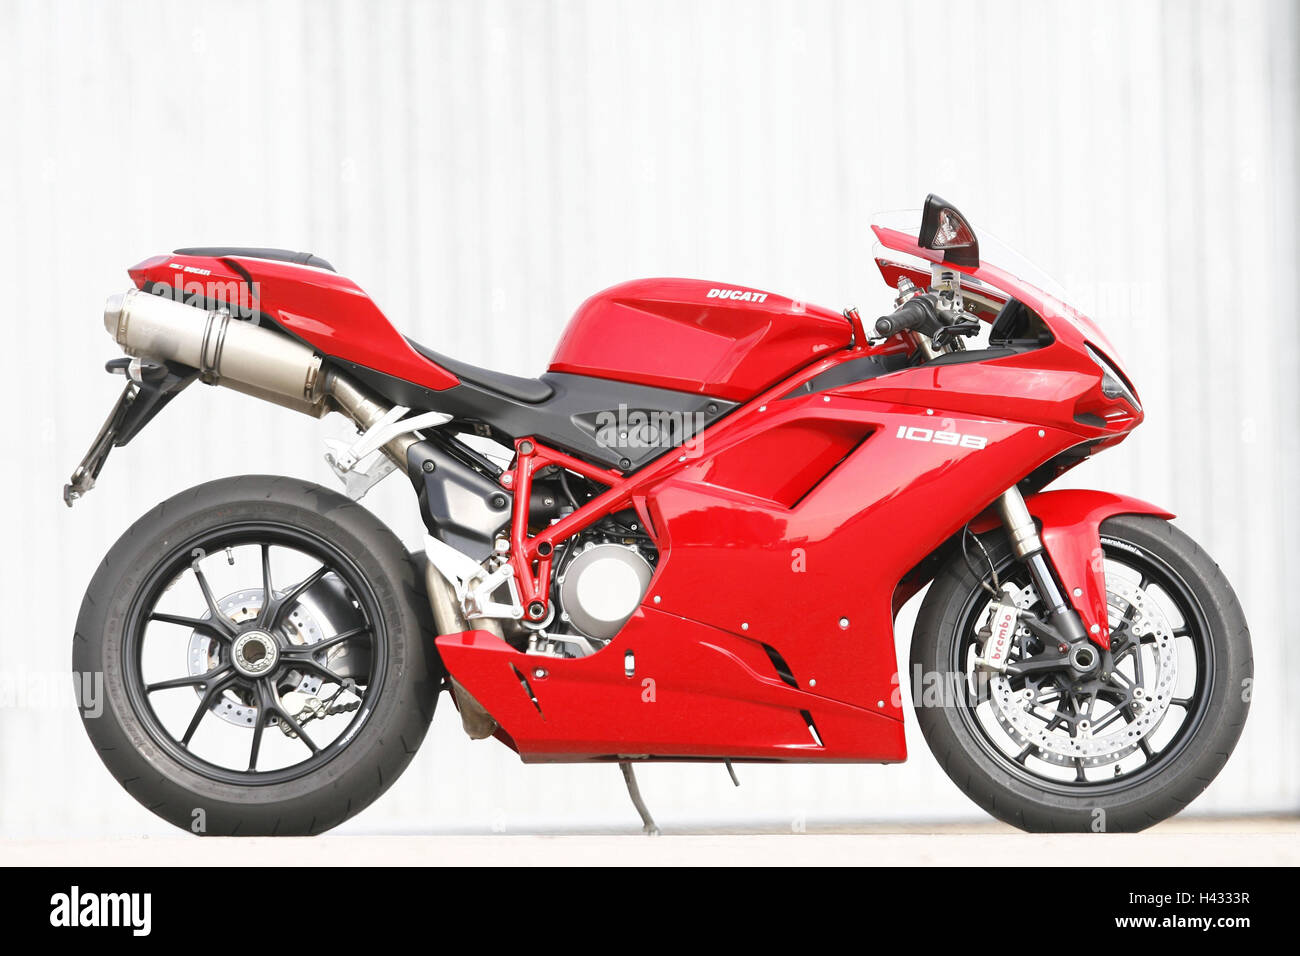 Motorcycle, Ducati in 1098, 1000th comparative test - Stock Image